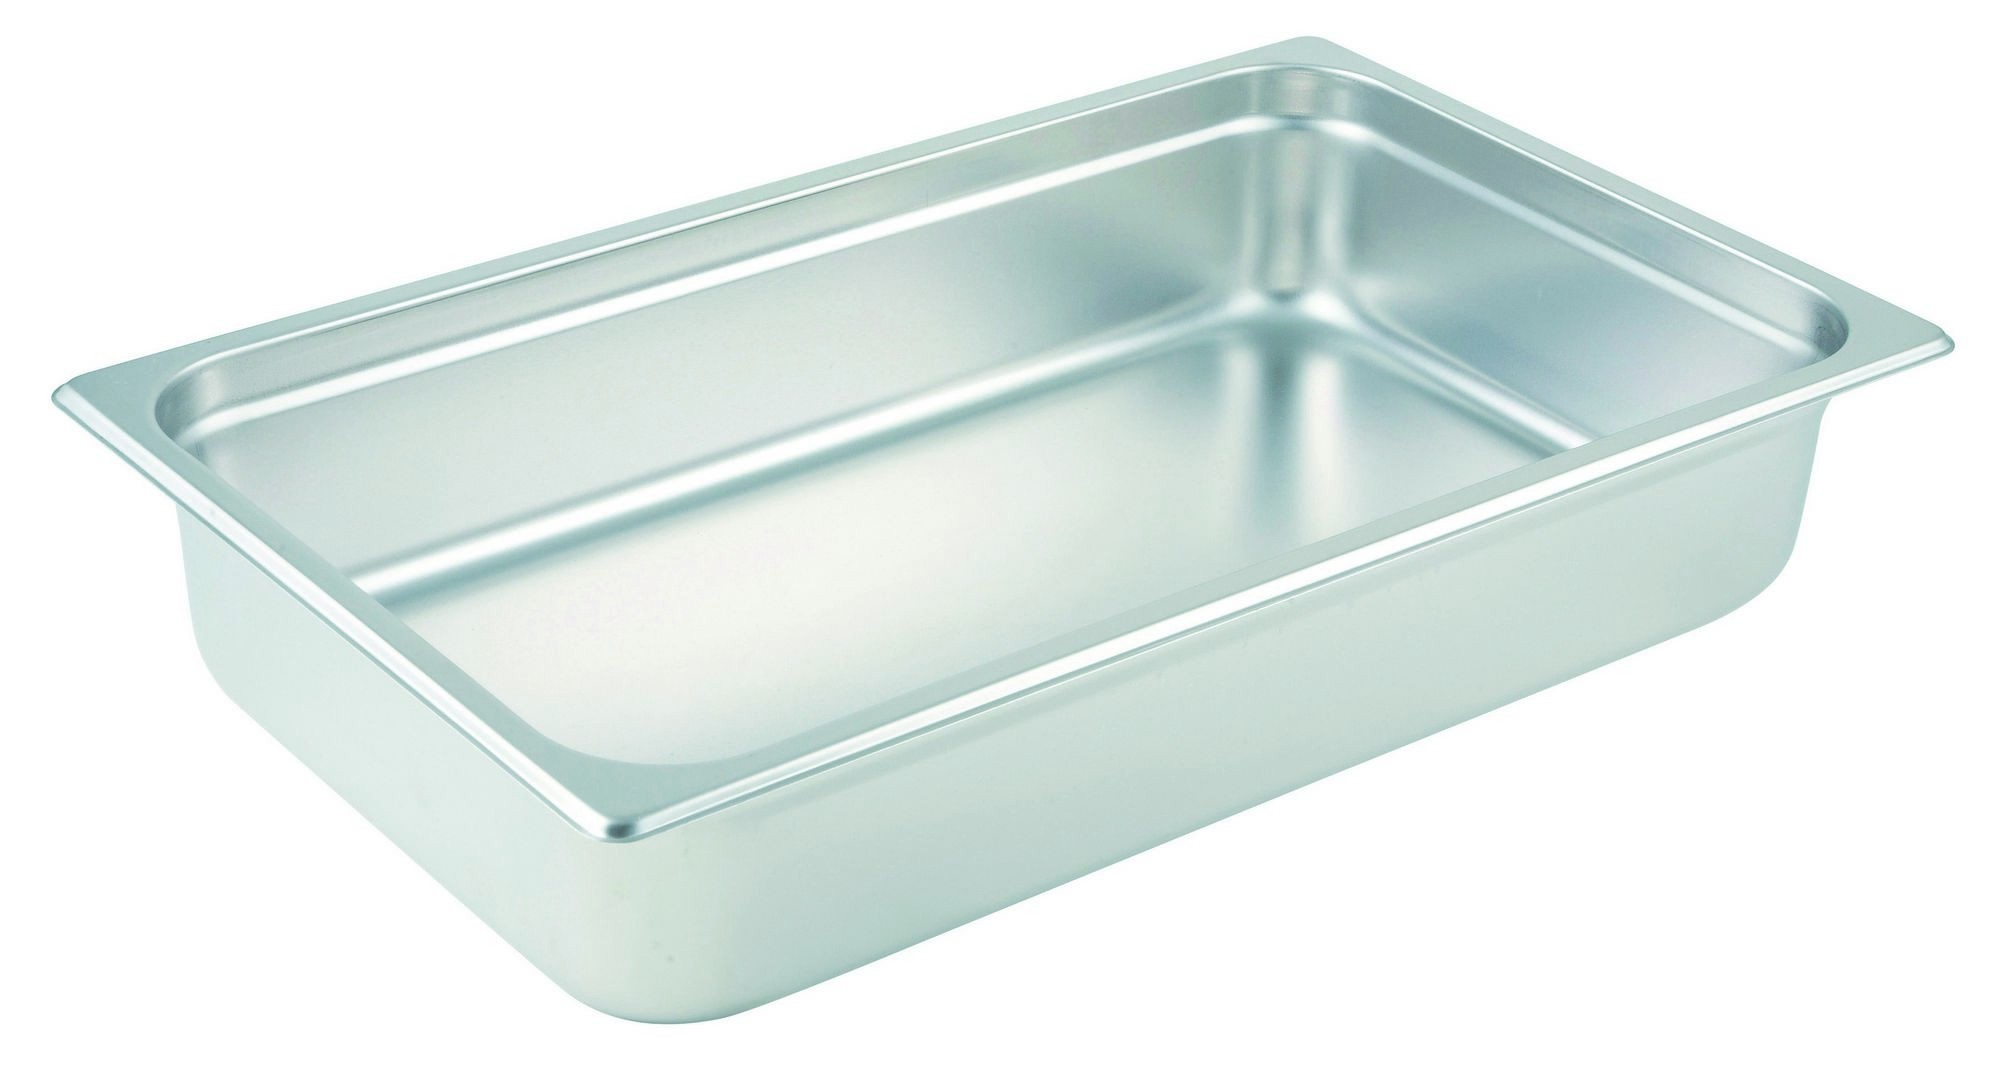 "Winco SPJM-104 Full Size Anti-Jam 24 Gauge Steam Table Pan 4"" Deep"